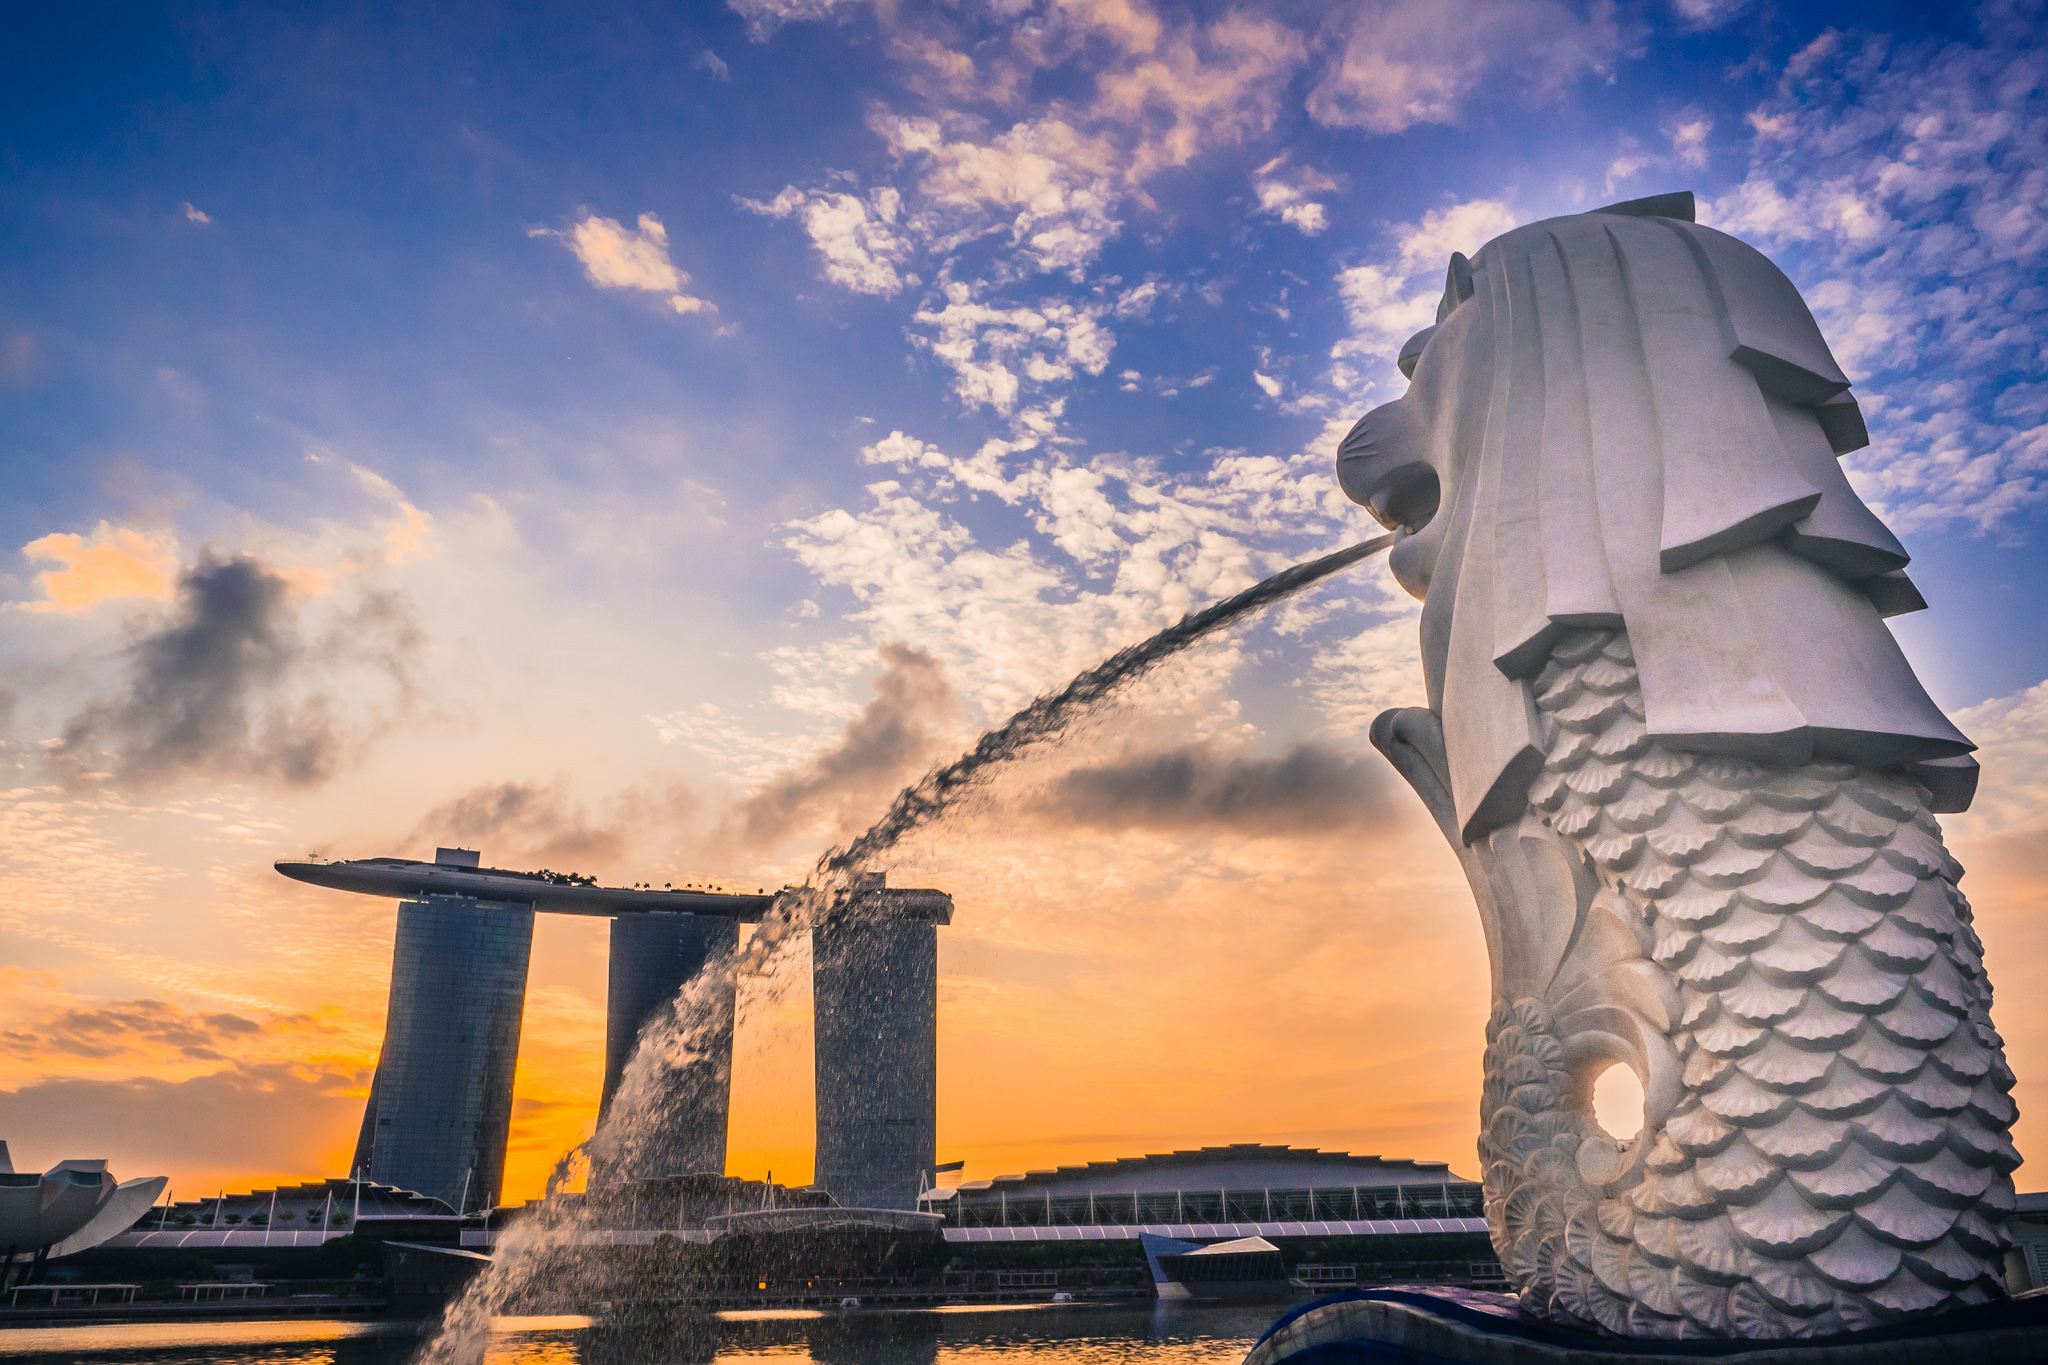 Merlion View of Marina Bay Sands